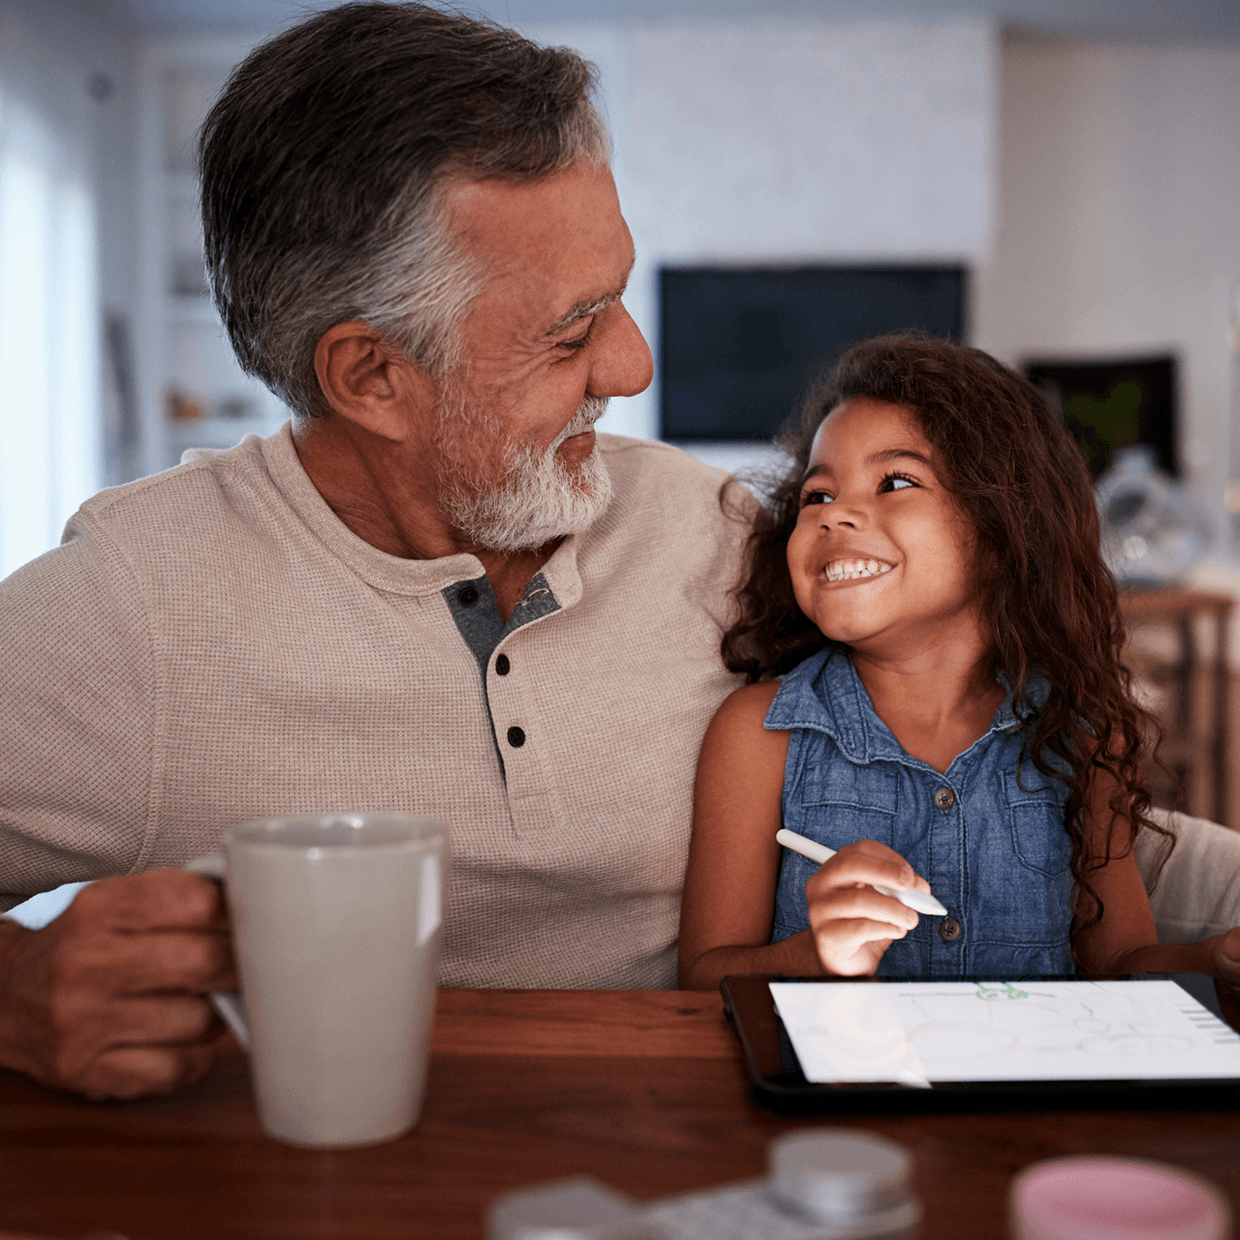 Grandpa coloring with a little girl.